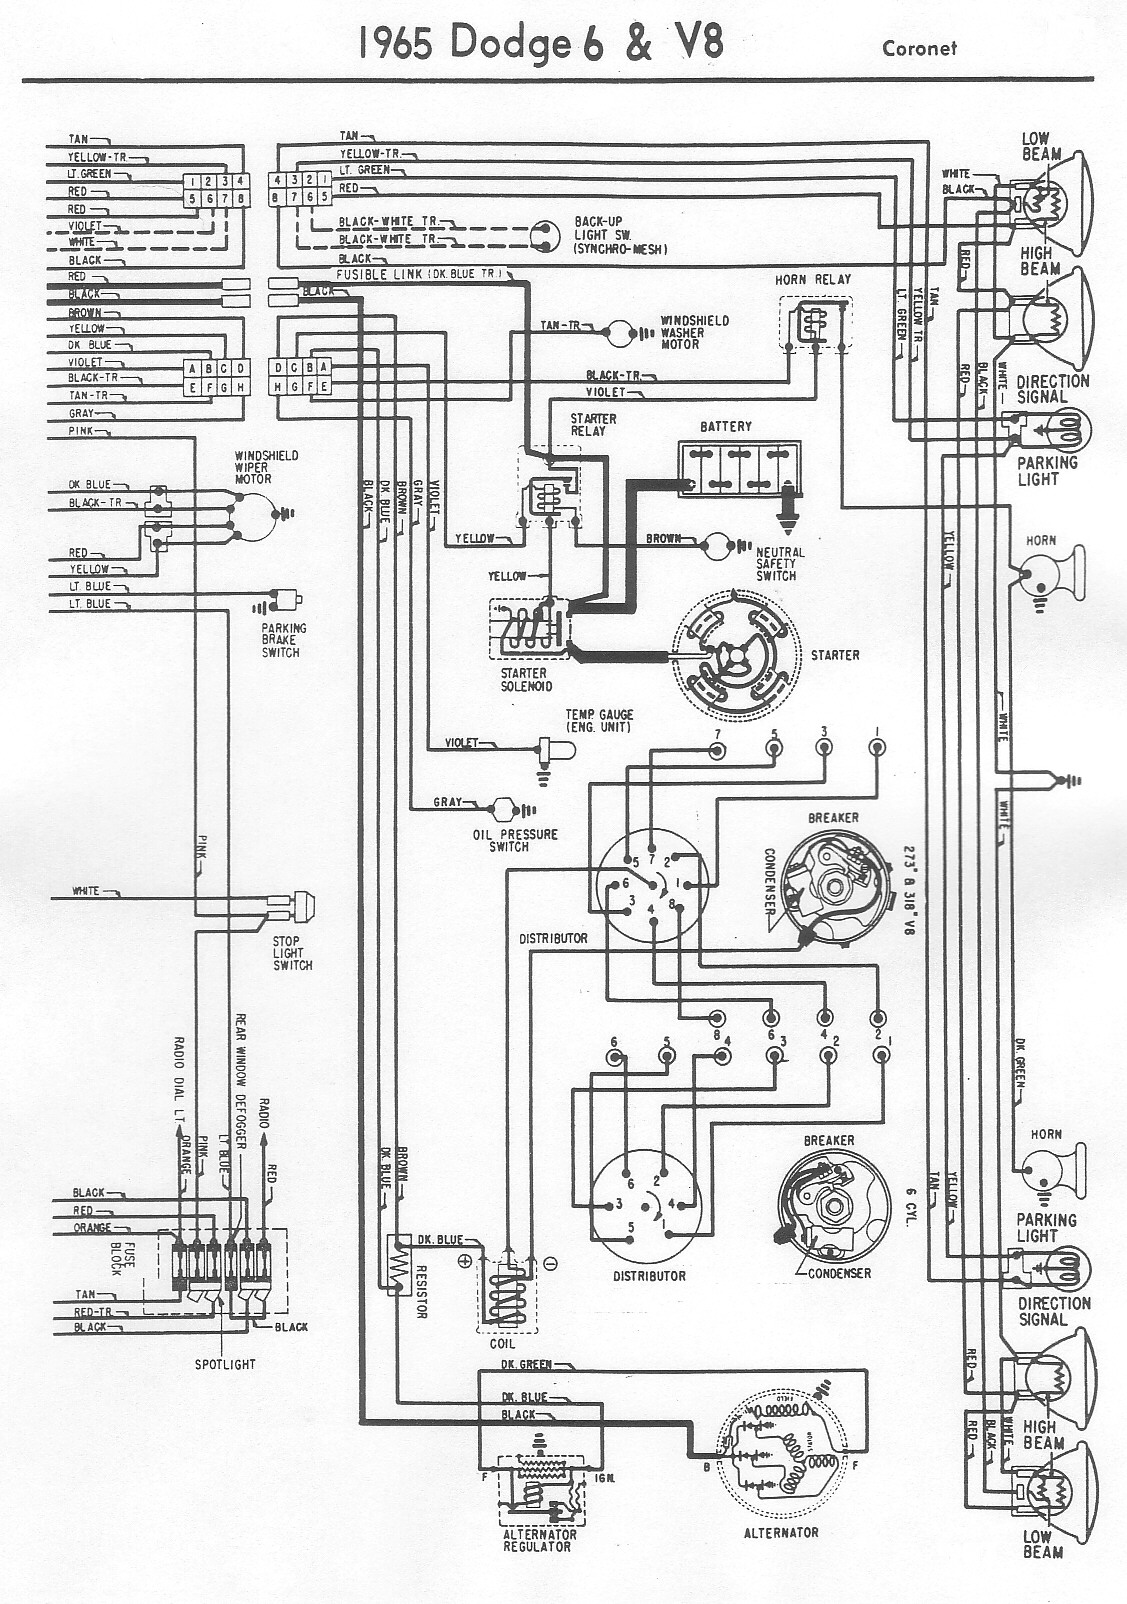 1965 wiring diagram vintage dodge coronet2 bzerob com technical articles library wiring section Trailer Wiring Harness Chrysler at gsmportal.co